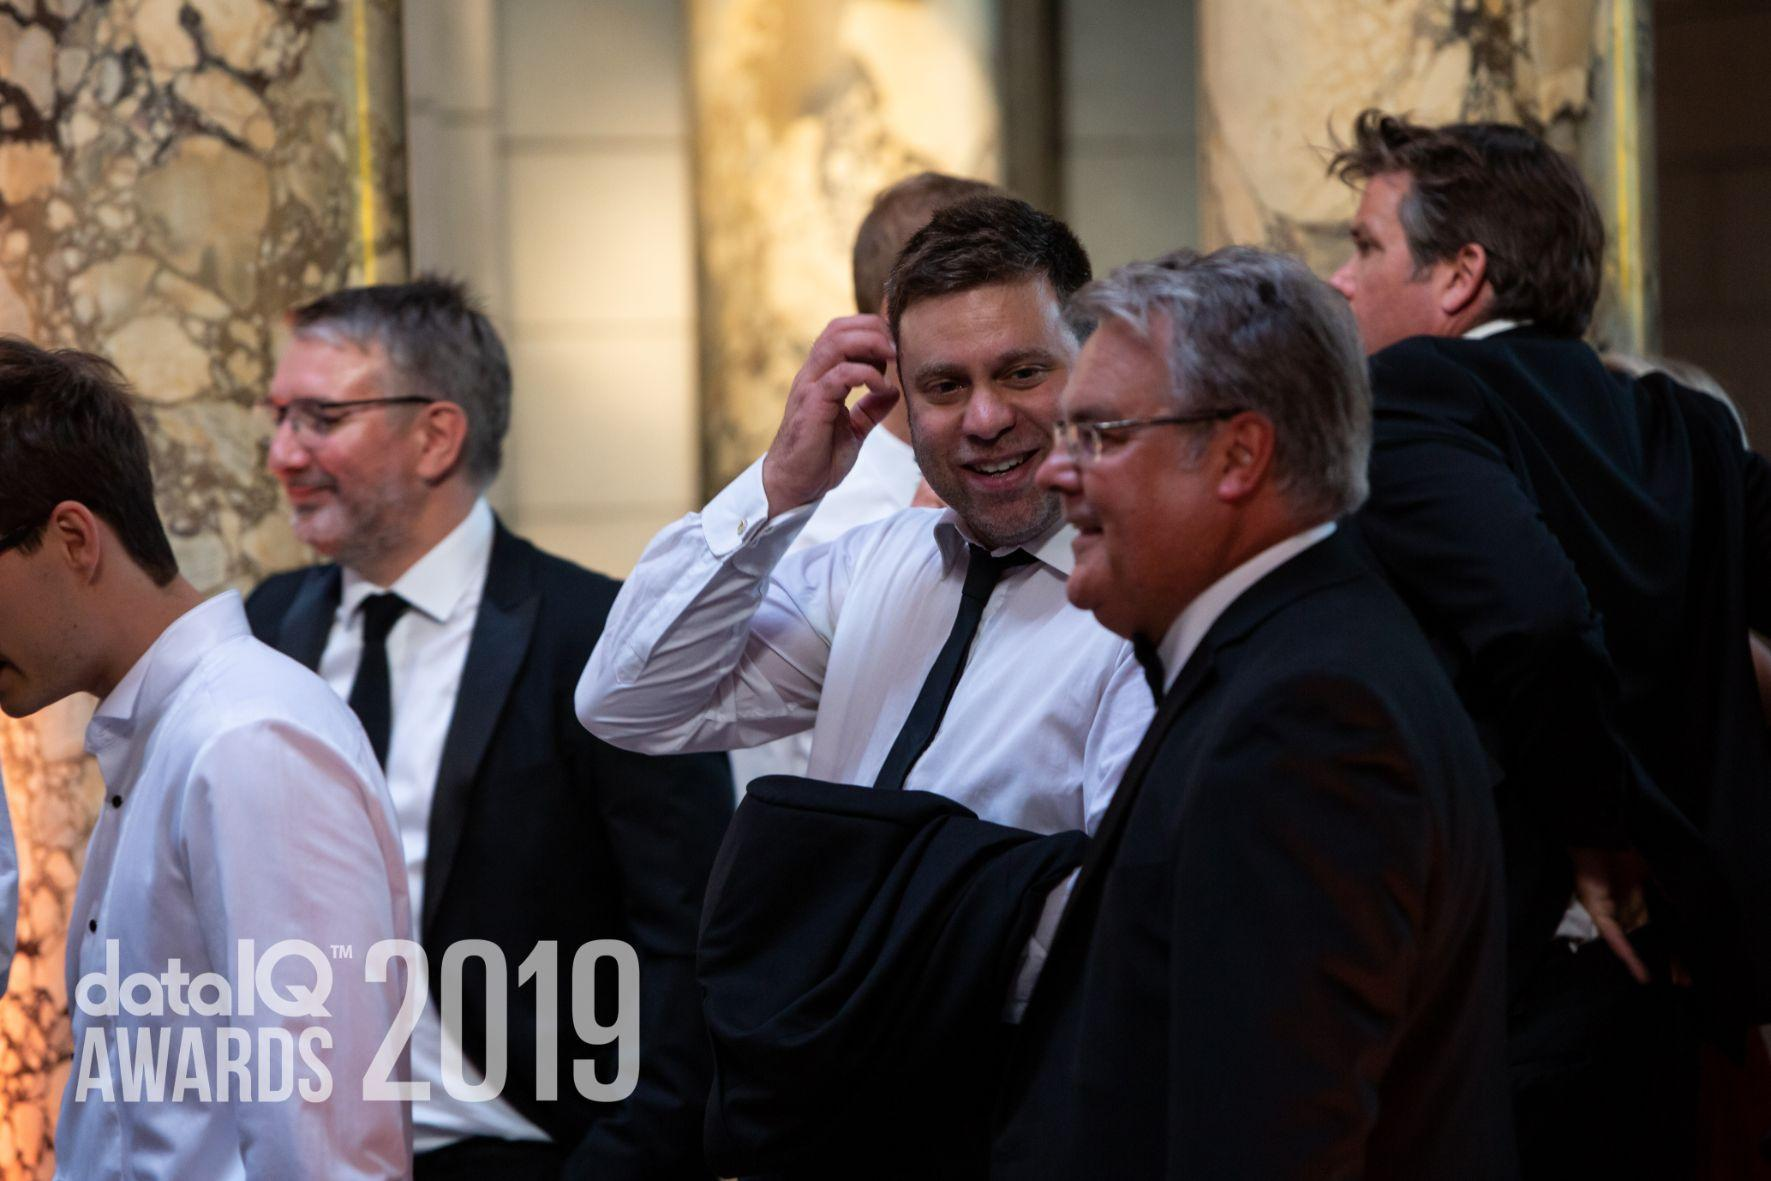 Awards 2019 Image 107